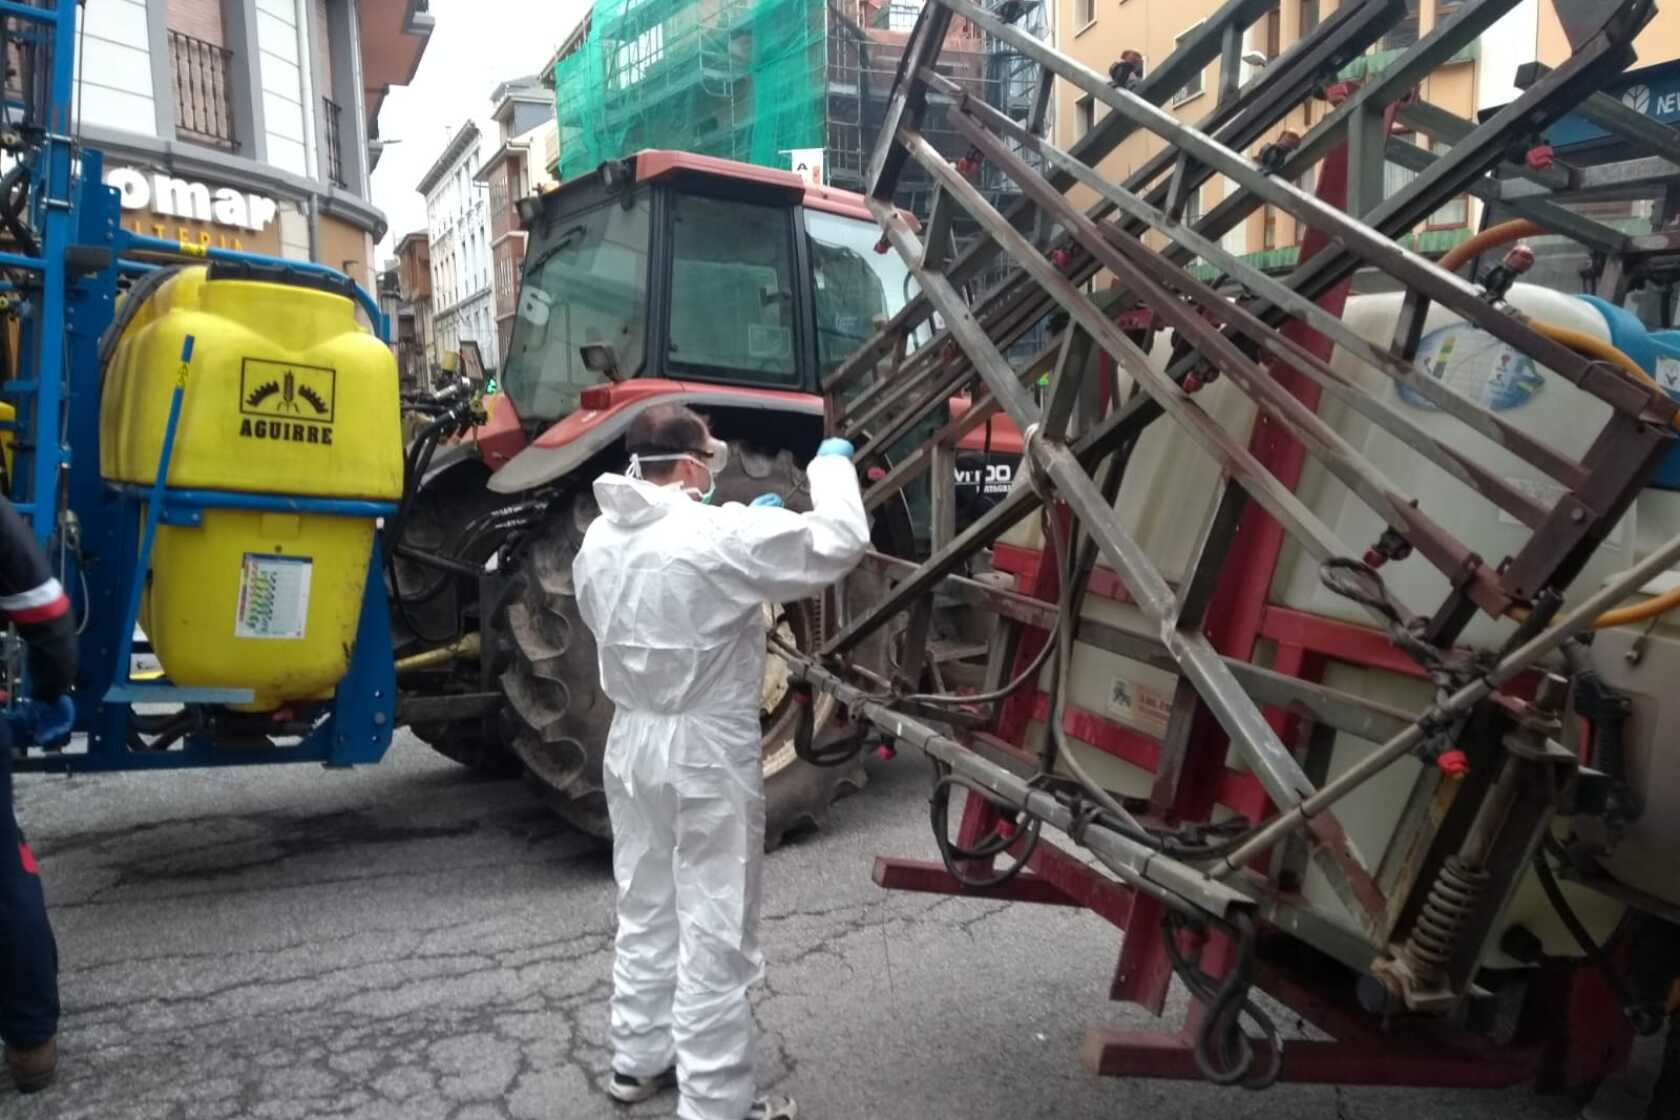 On the front line of the coronavirus threat in Spain, tractors scatter the streets with hope